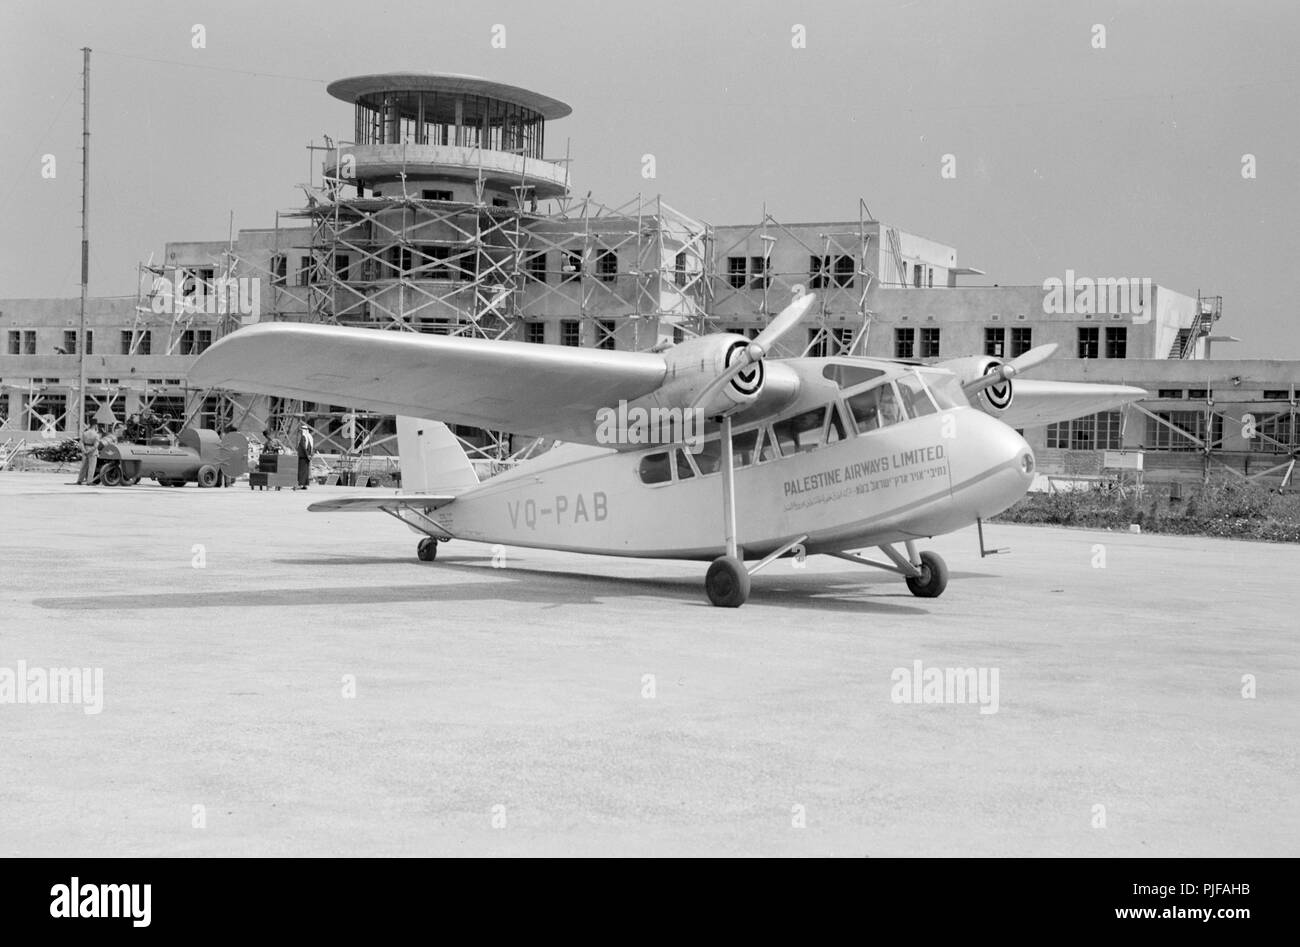 Palestine Airways at Inauguration of Tel-Aviv landing ground. Palestine Airways, Palestine Air Transport was an airline founded by Zionist Pinhas Rutenberg in British Palestine, in conjunction with the Histadrut and the Jewish Agency. It operated from 1937 until 1940, under the aegis of the British corporation Imperial Airways. - Stock Image